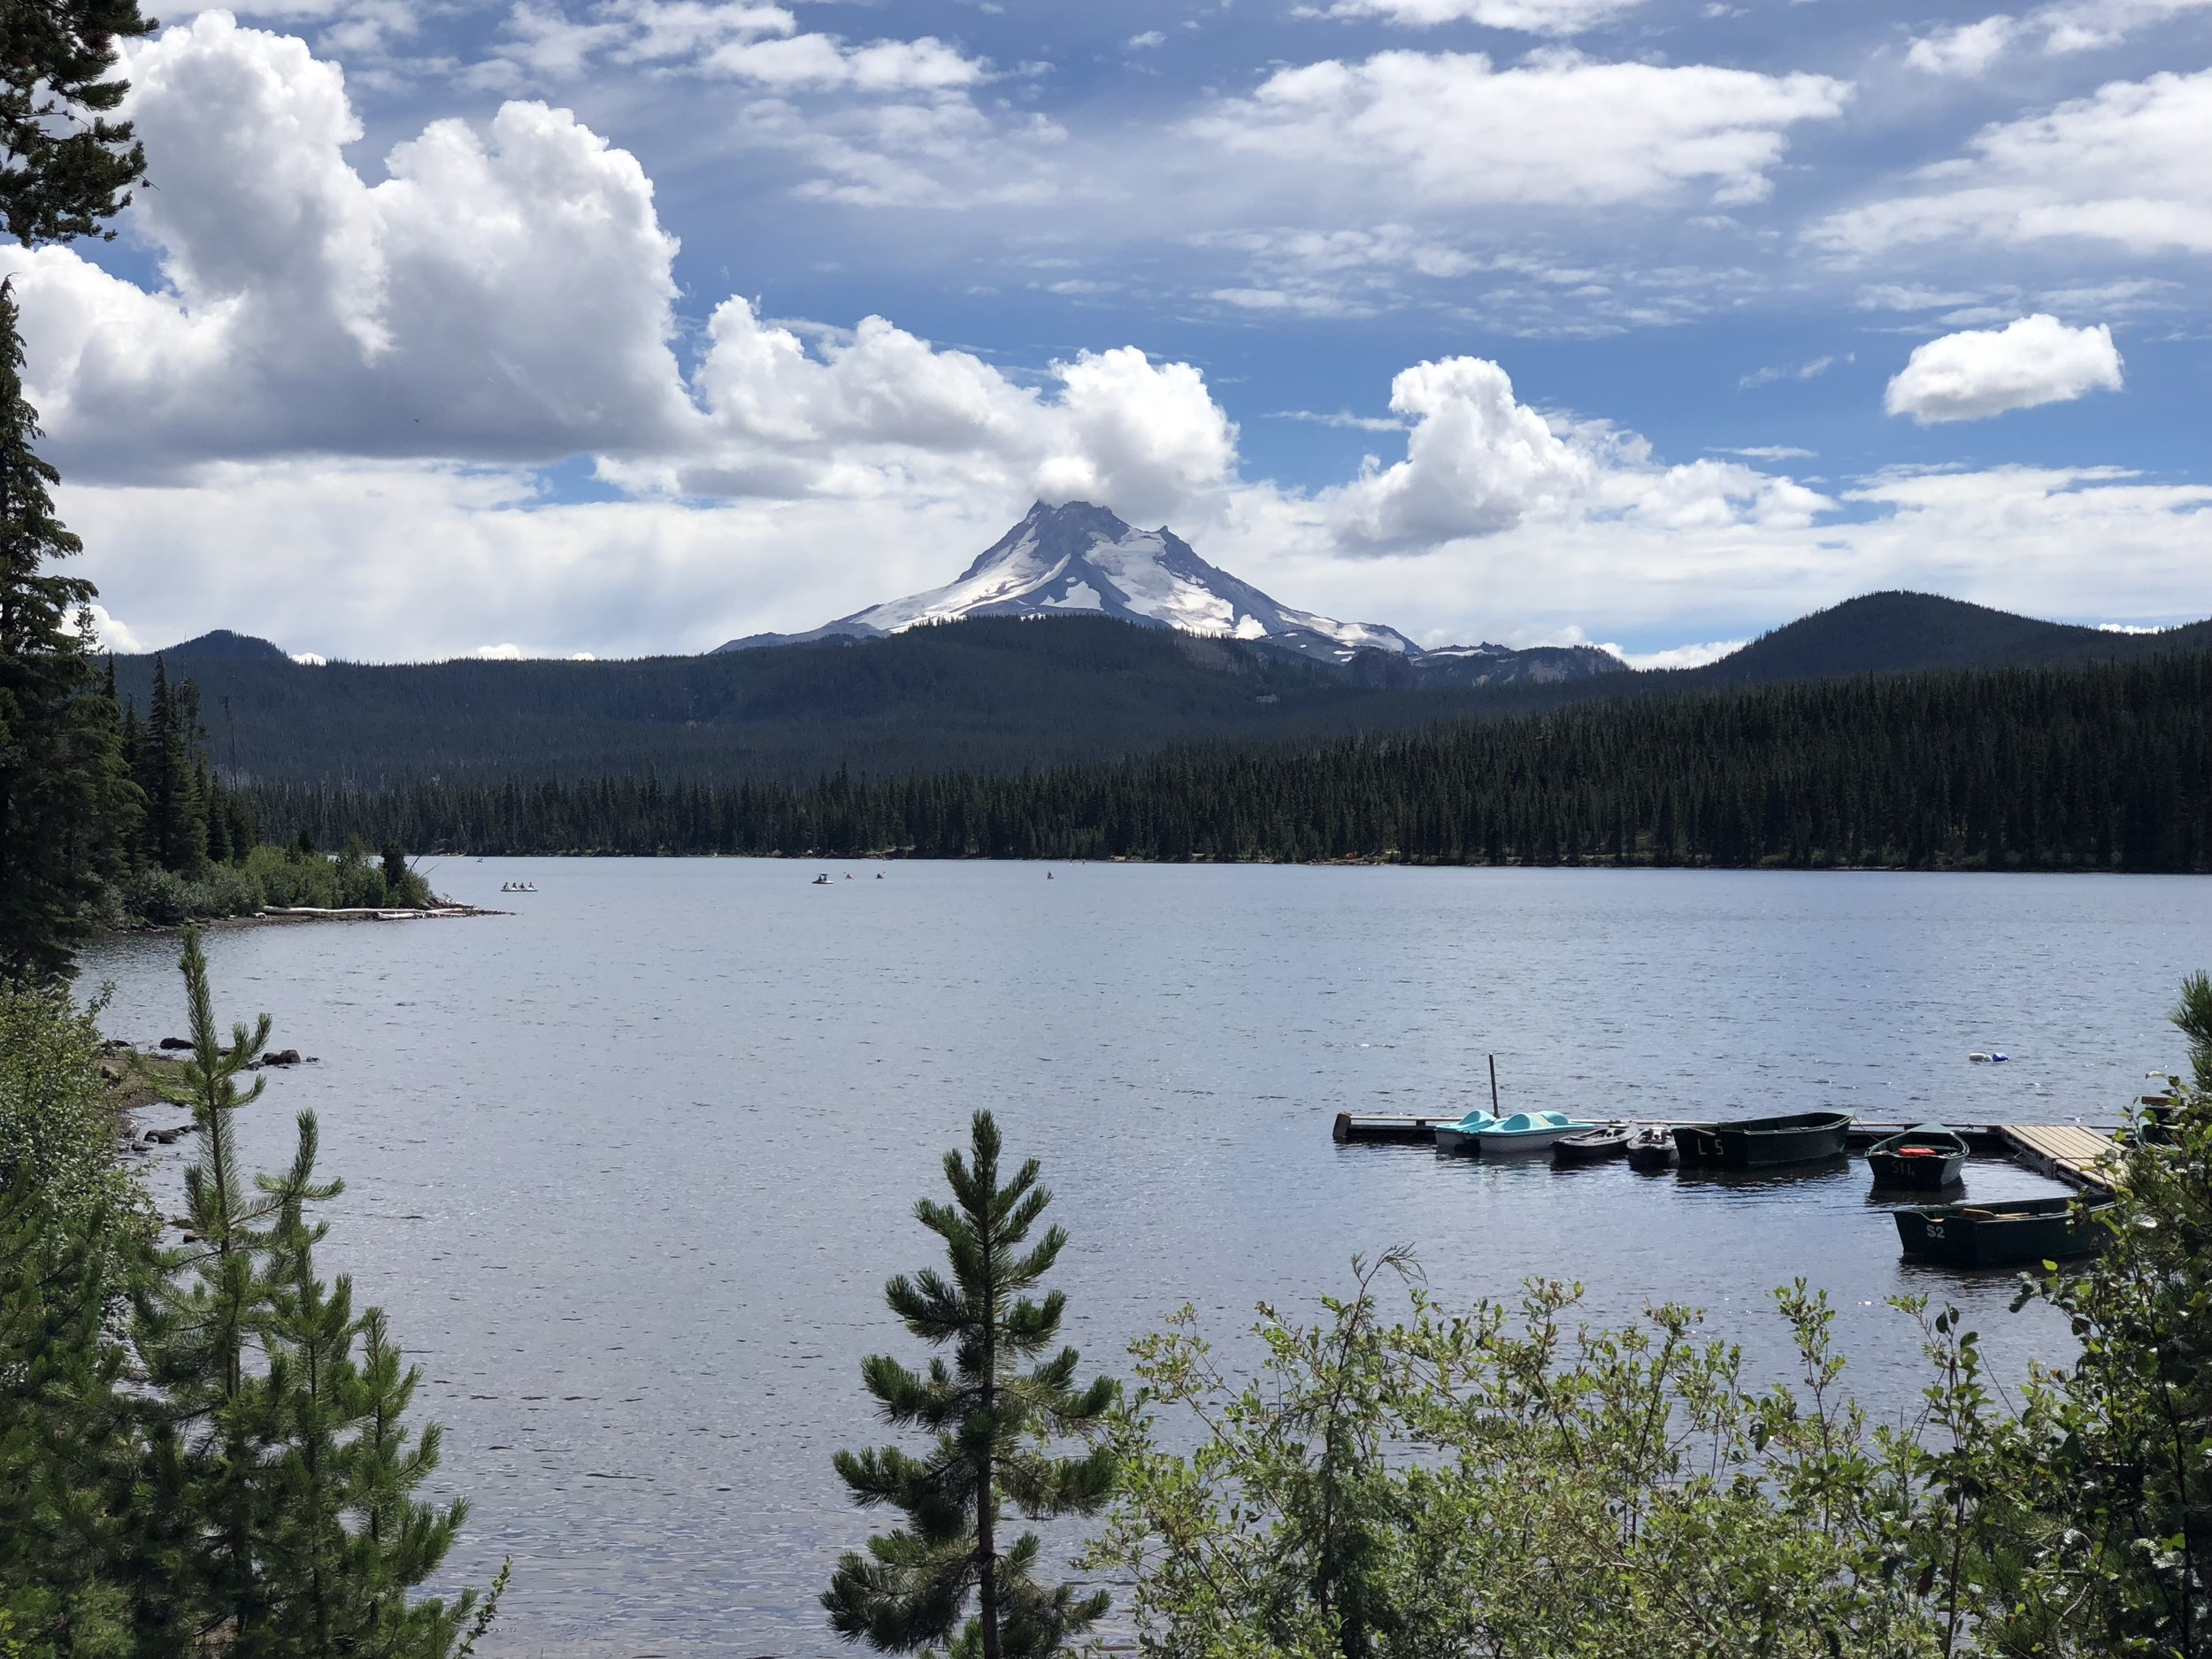 Olallie Lake with Mount Jefferson in the background.